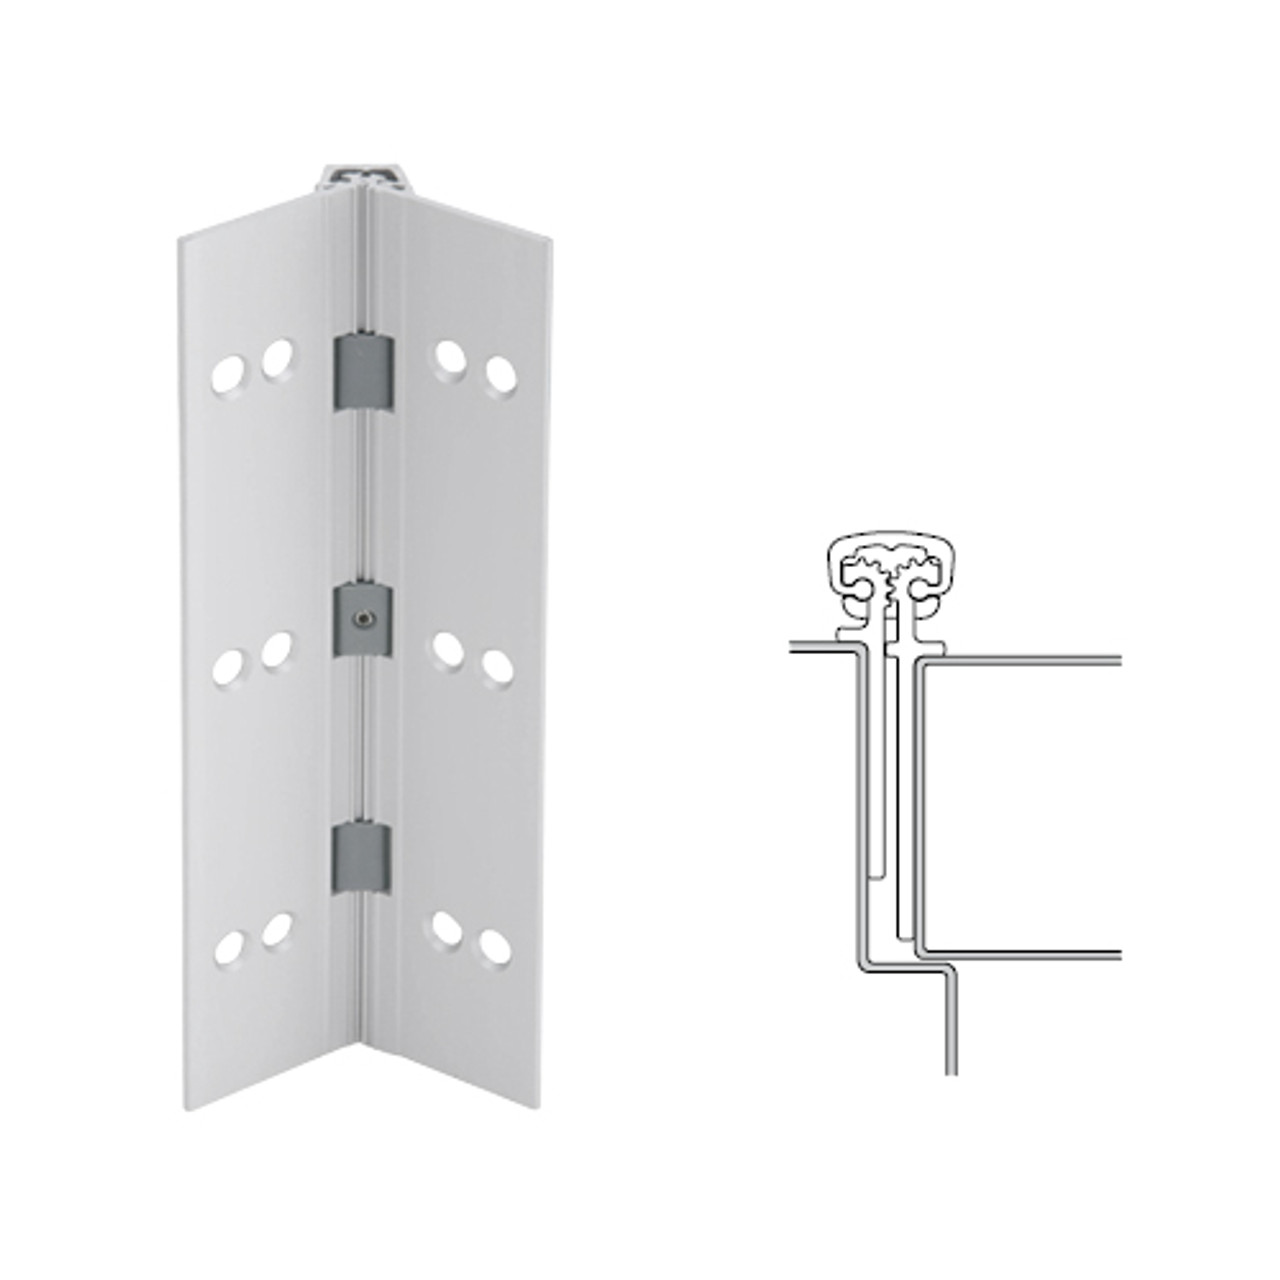 026XY-US28-120-EPT IVES Full Mortise Continuous Geared Hinges with Electrical Power Transfer Prep in Satin Aluminum